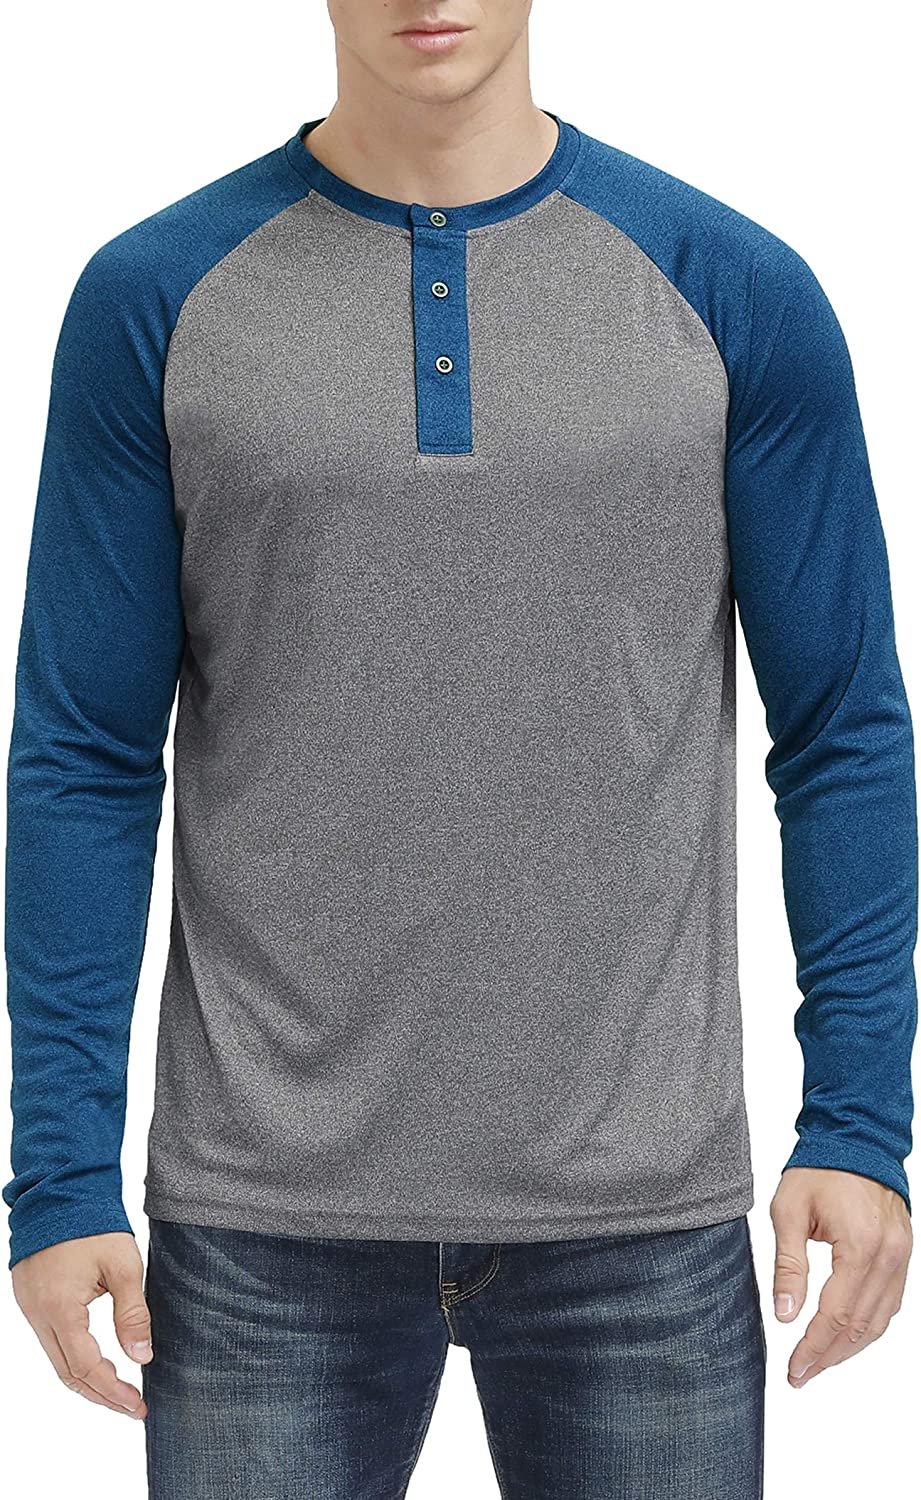 MOHEEN All items free shipping Men's Big New sales Tall Athletic Sleeve Long Lightweight Shirts